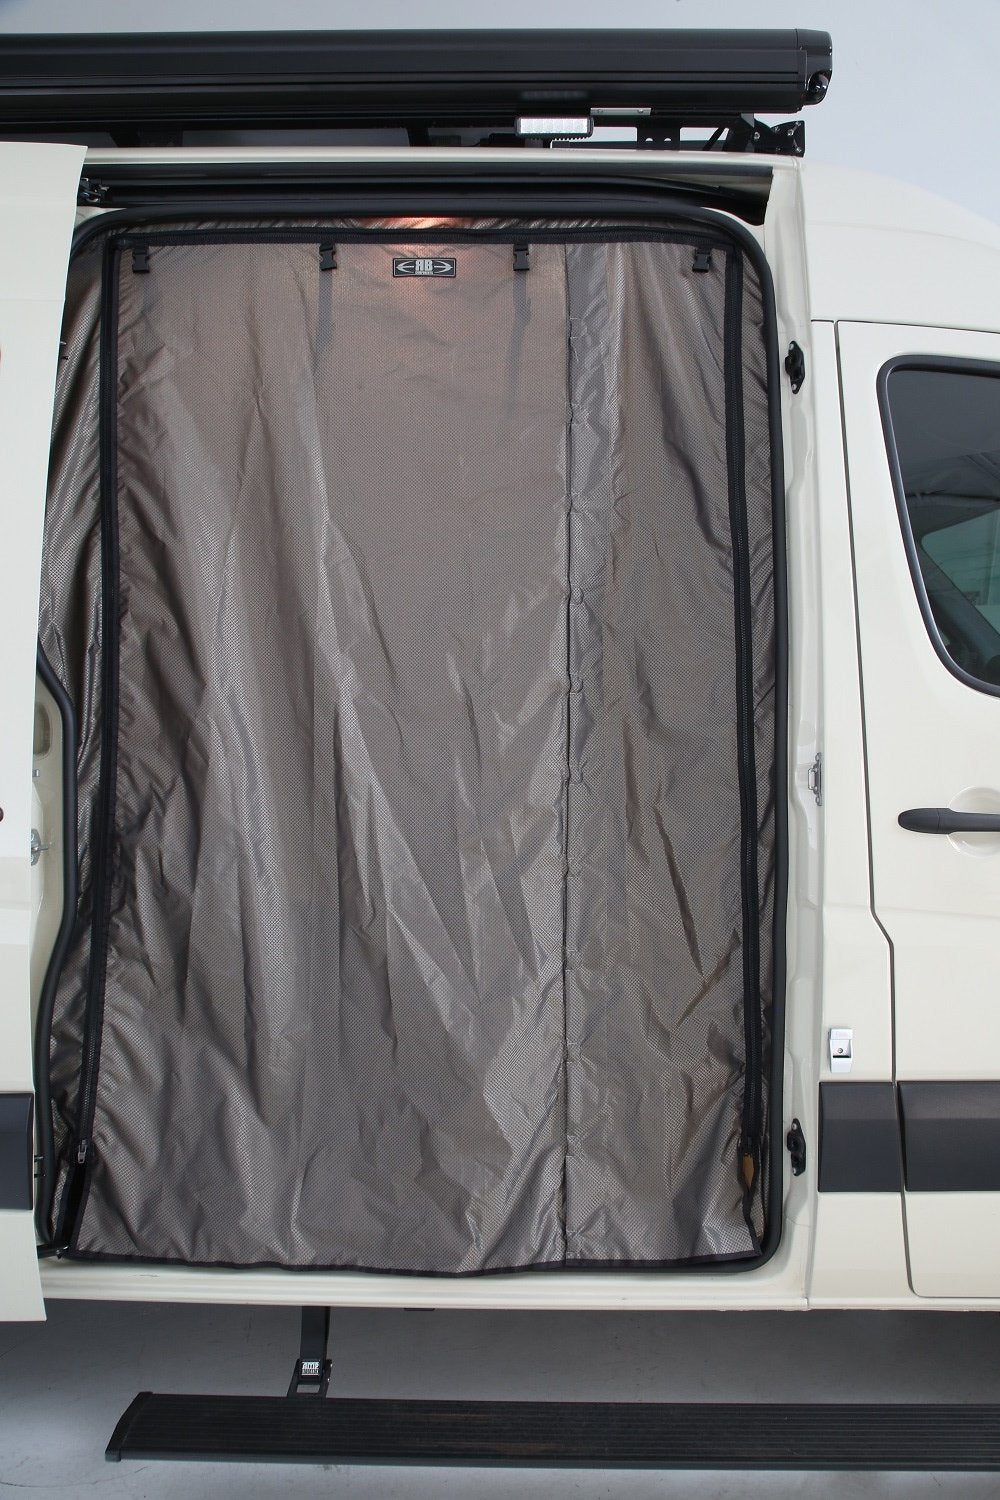 2007+ Sprinter Van Fabric - Passenger Sliding Door Bug Net + Solid Cover Set